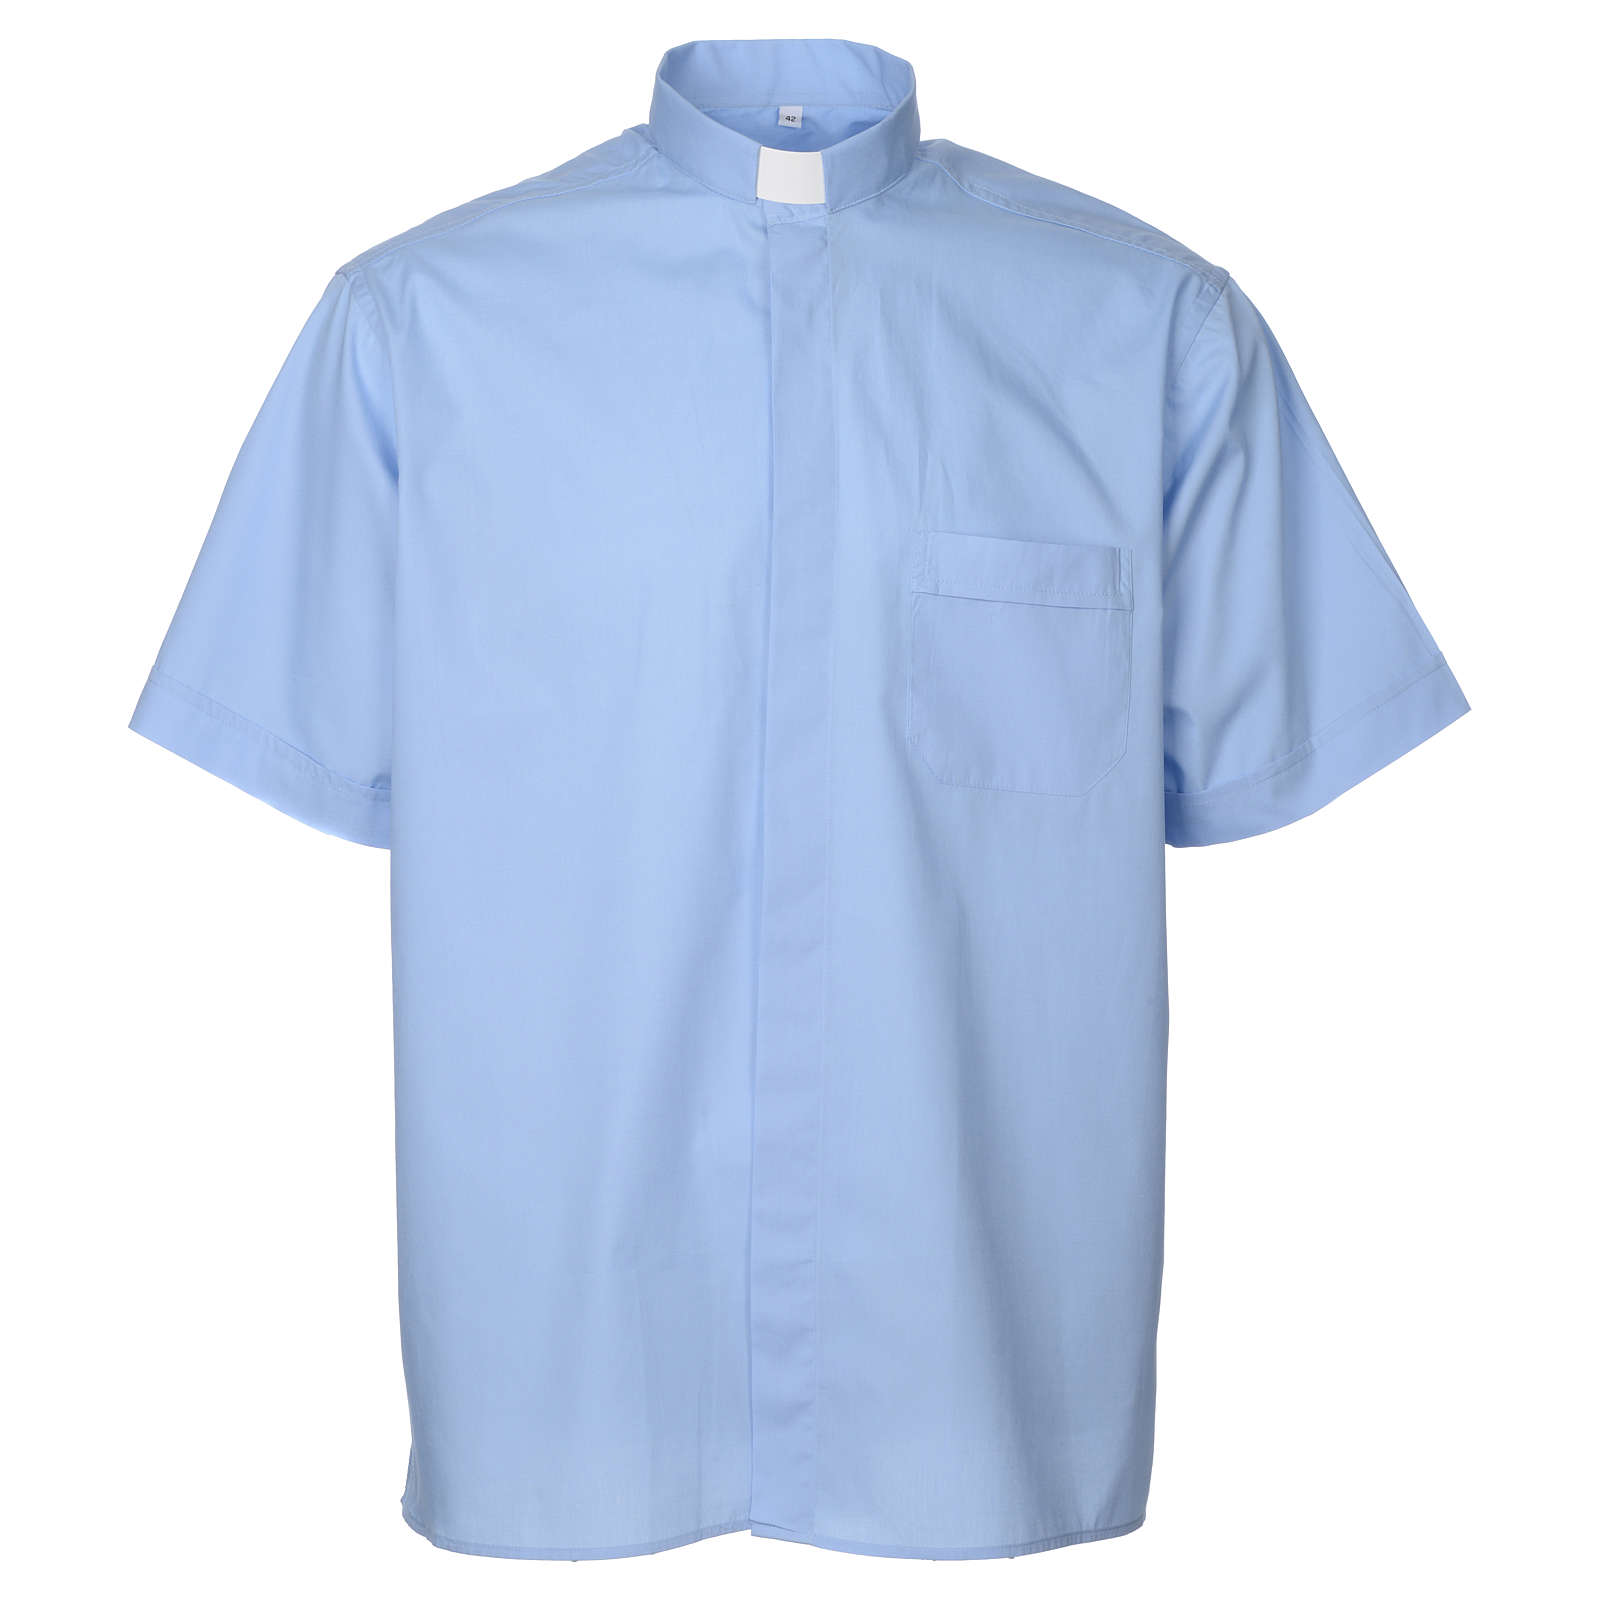 STOCK Clergy shirt, short sleeves in light blue mixed cotton 4